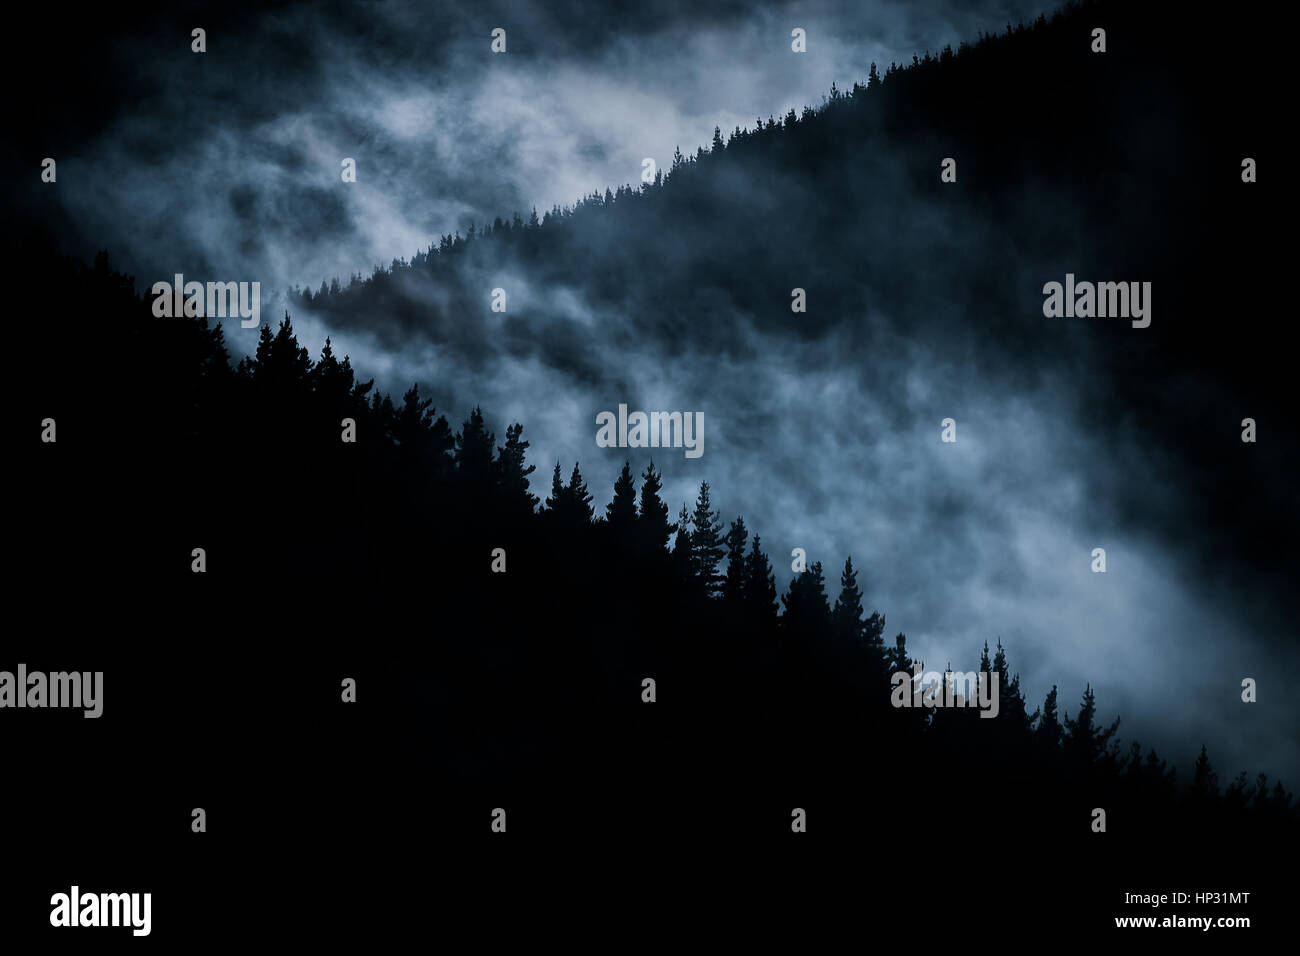 scary foggy mountain at nigh - Stock Image